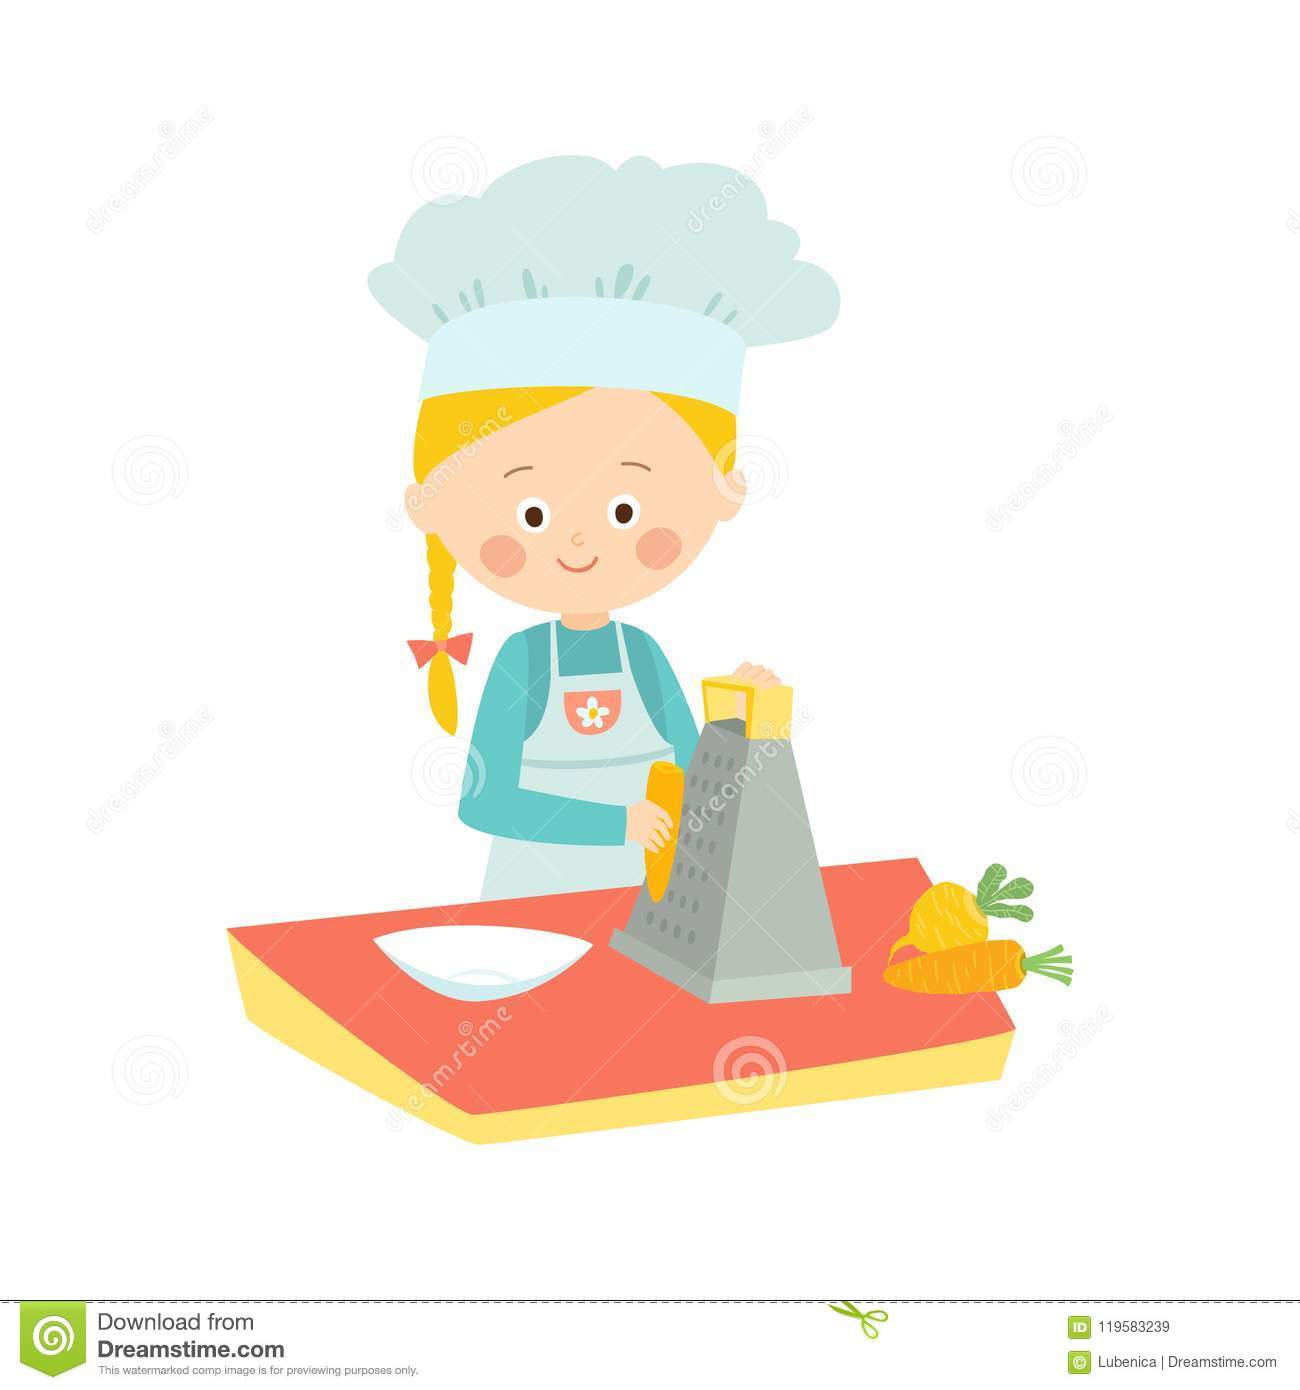 Cooking Day Clipart Kids & Clip Art Images #29550.